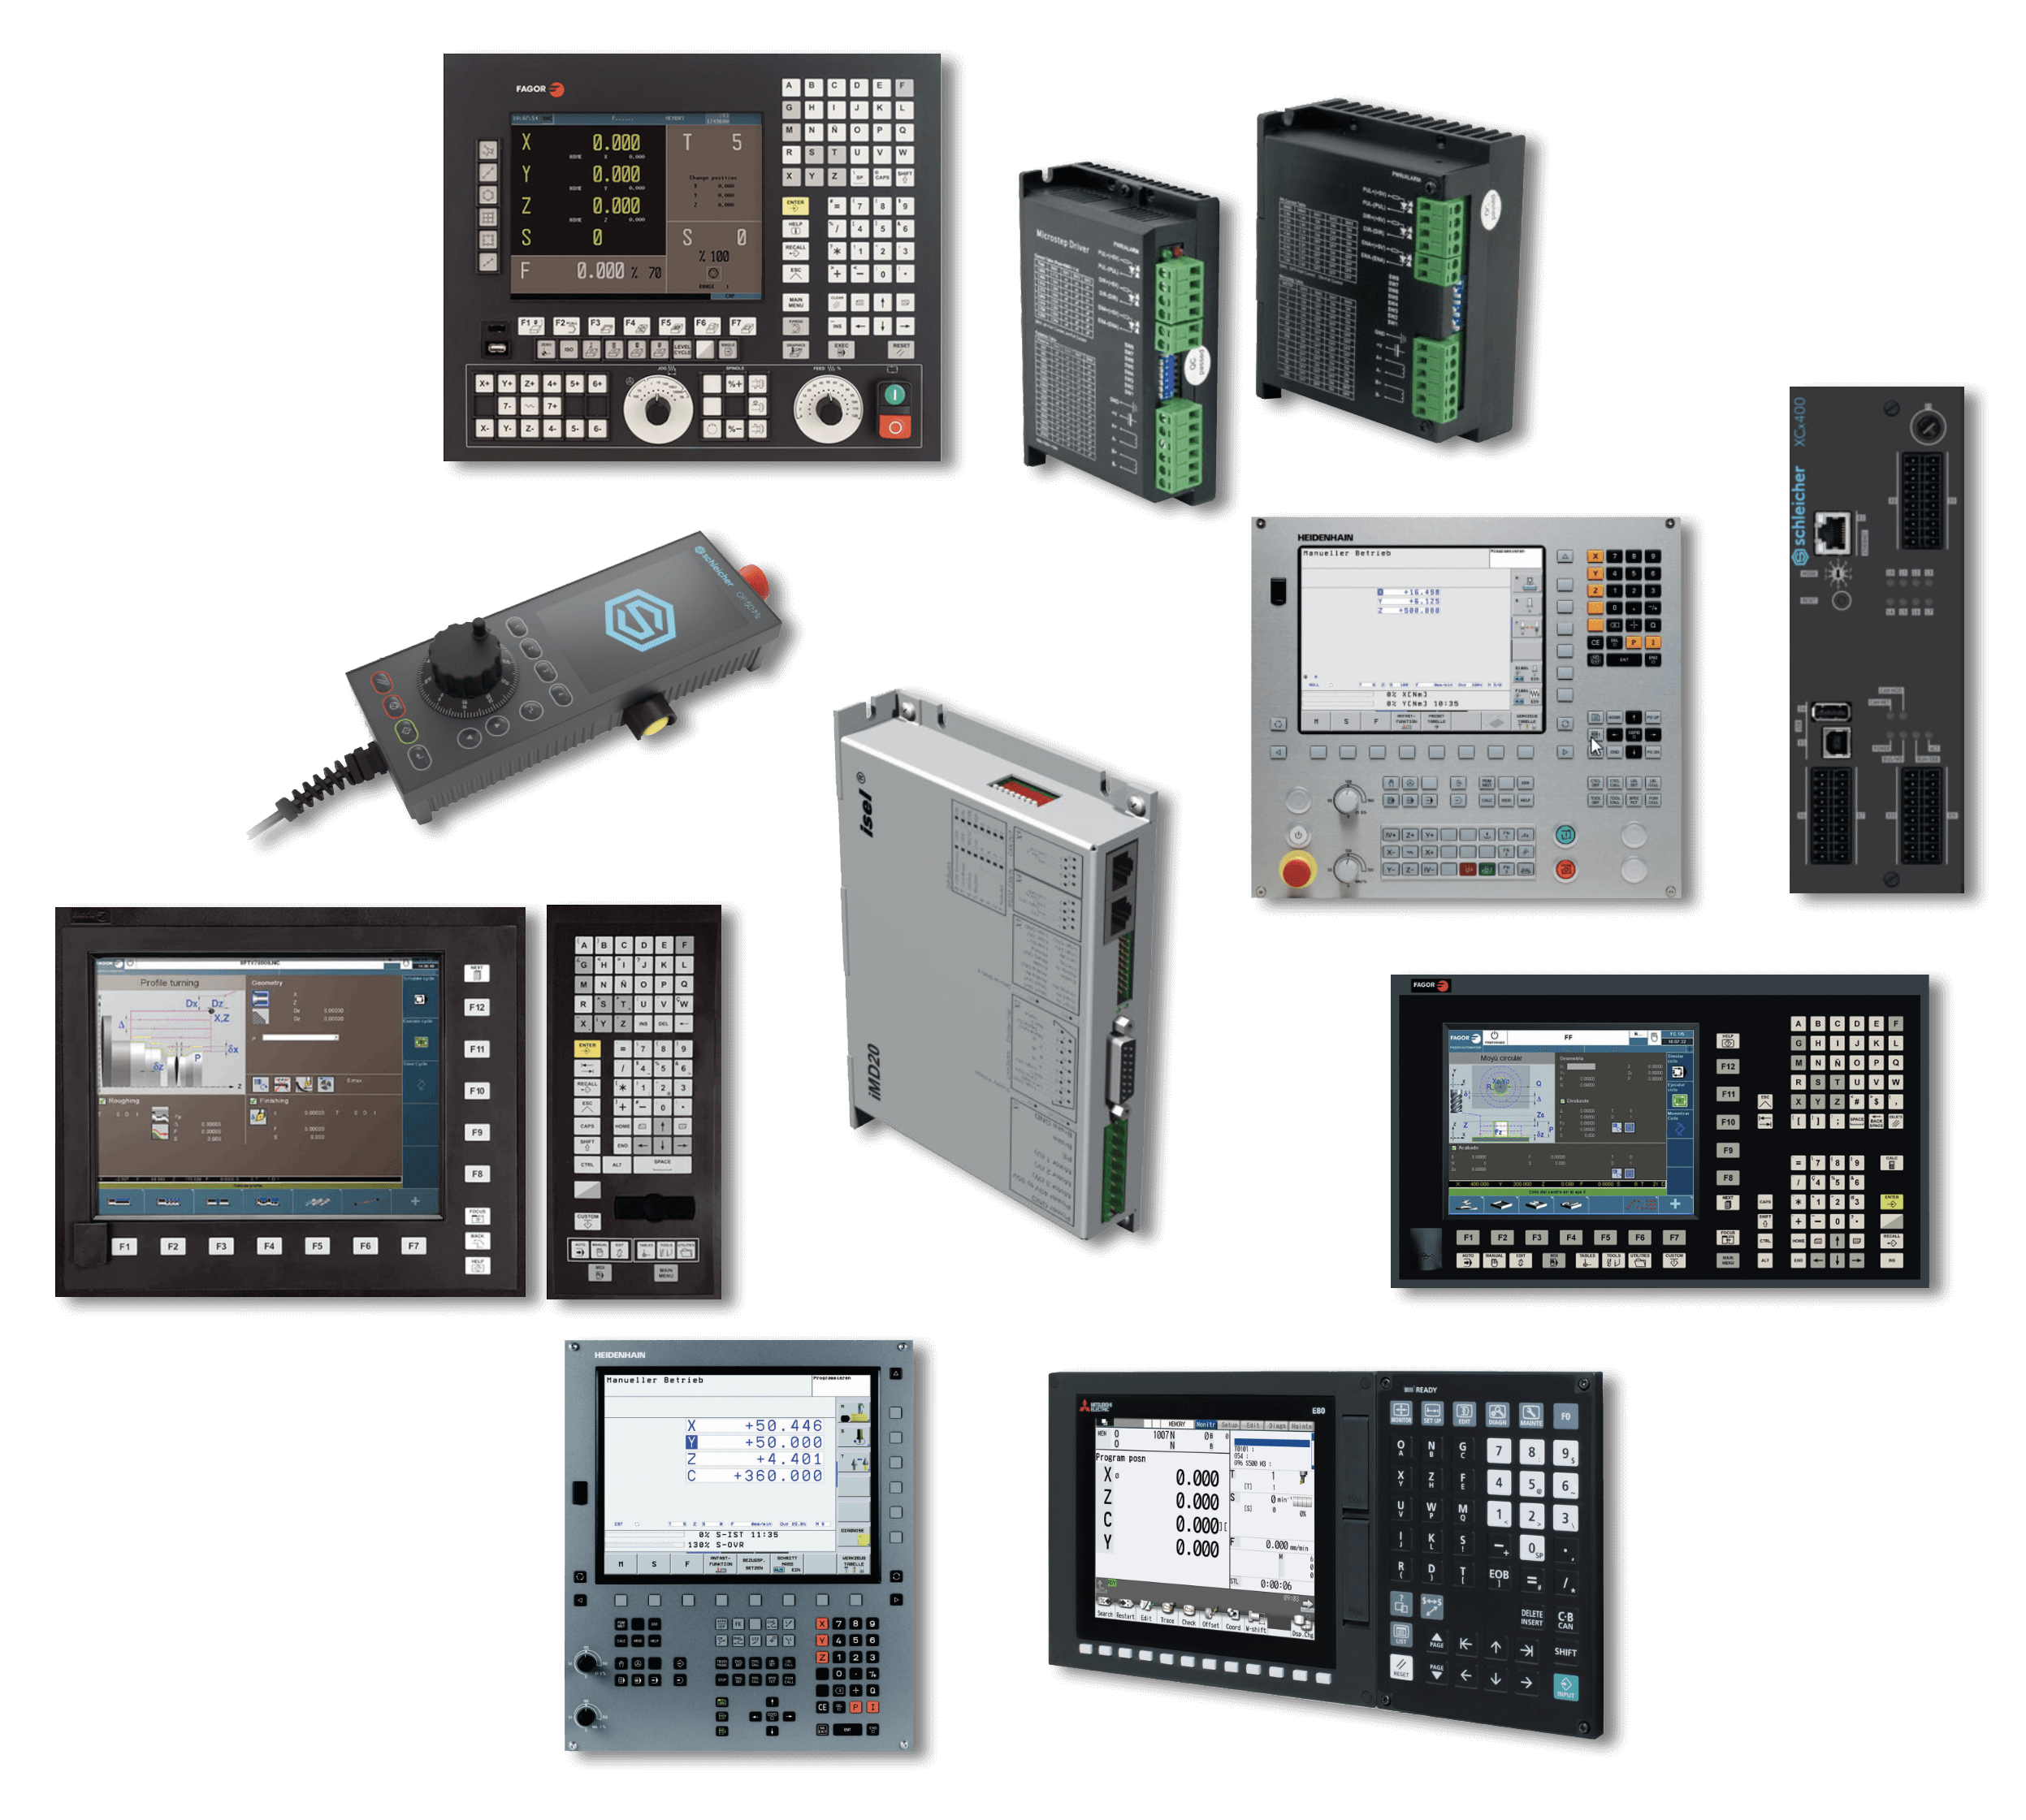 CNC - Our Product Range - Other Manufacturers - BVS Industrie-Elektronik